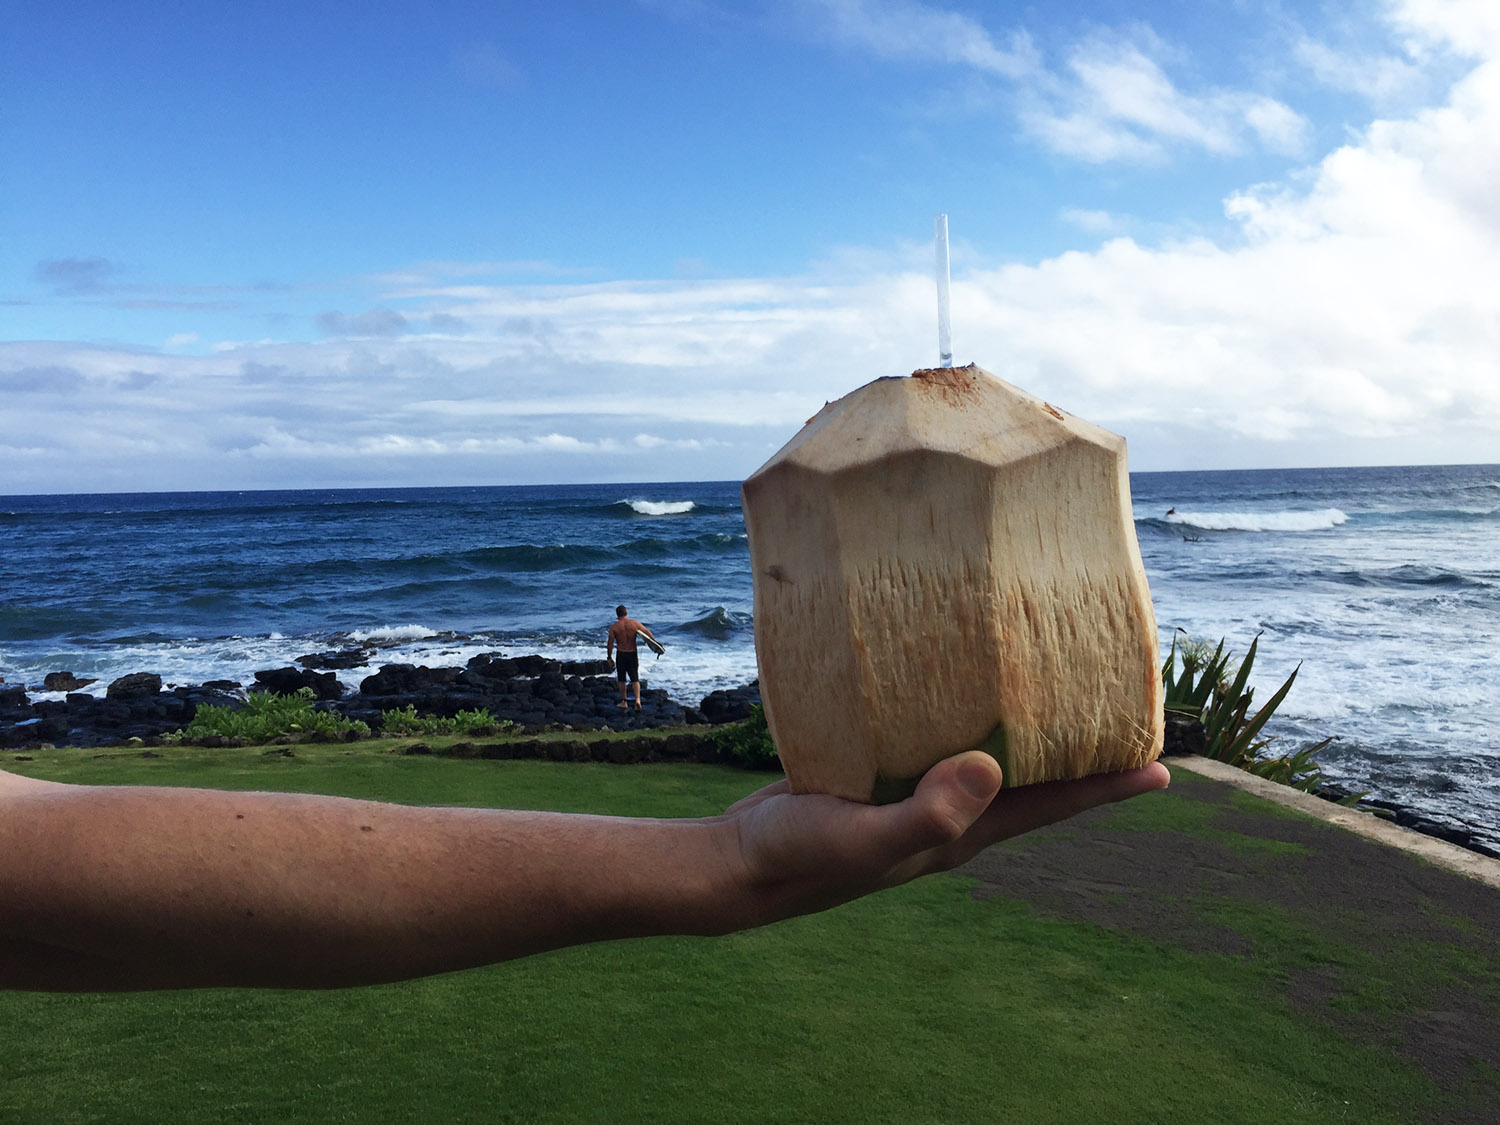 blog_kauai_coconut2.jpg